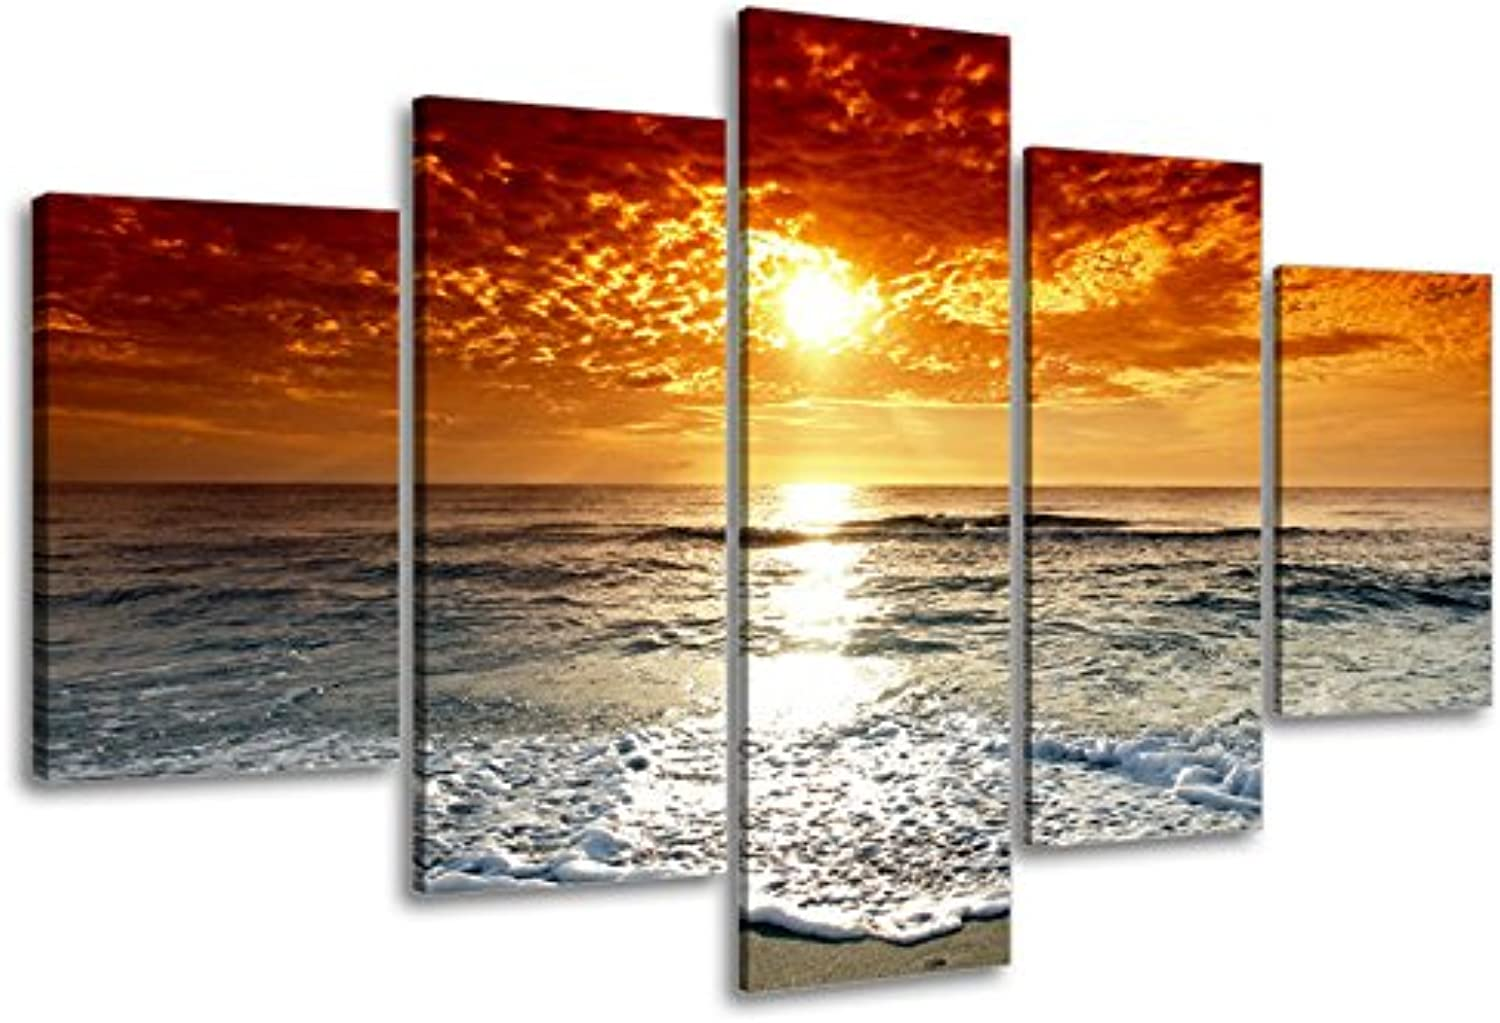 Ocean Pictures, SZ 5 Piece Beautiful Sunset Canvas Wall Art, Cloudy Seascape Canvas Prints for Living Room, Ready to Hang, 1  Deep, Waterproof, Large, Not Cut on Sun